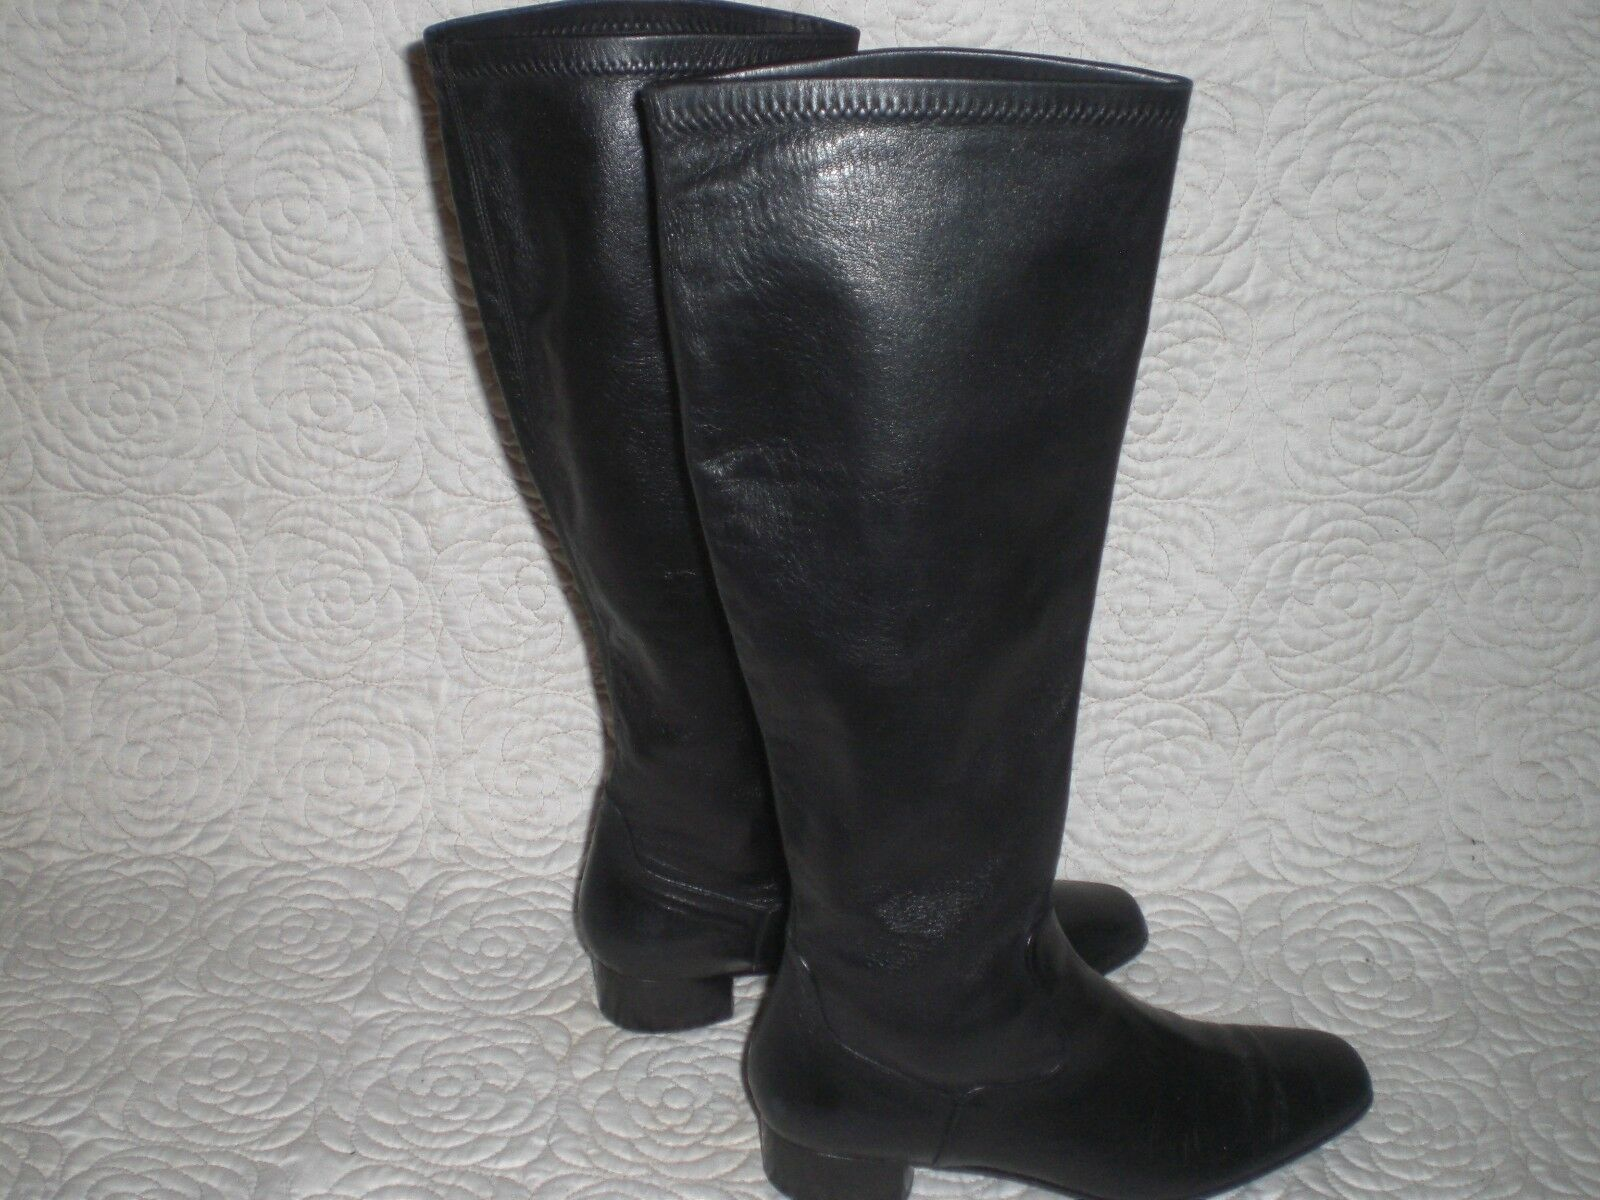 COLE HAAN  MADE IN ITALY SHINNY LEATHER BOOTS SIZE 6.5 B